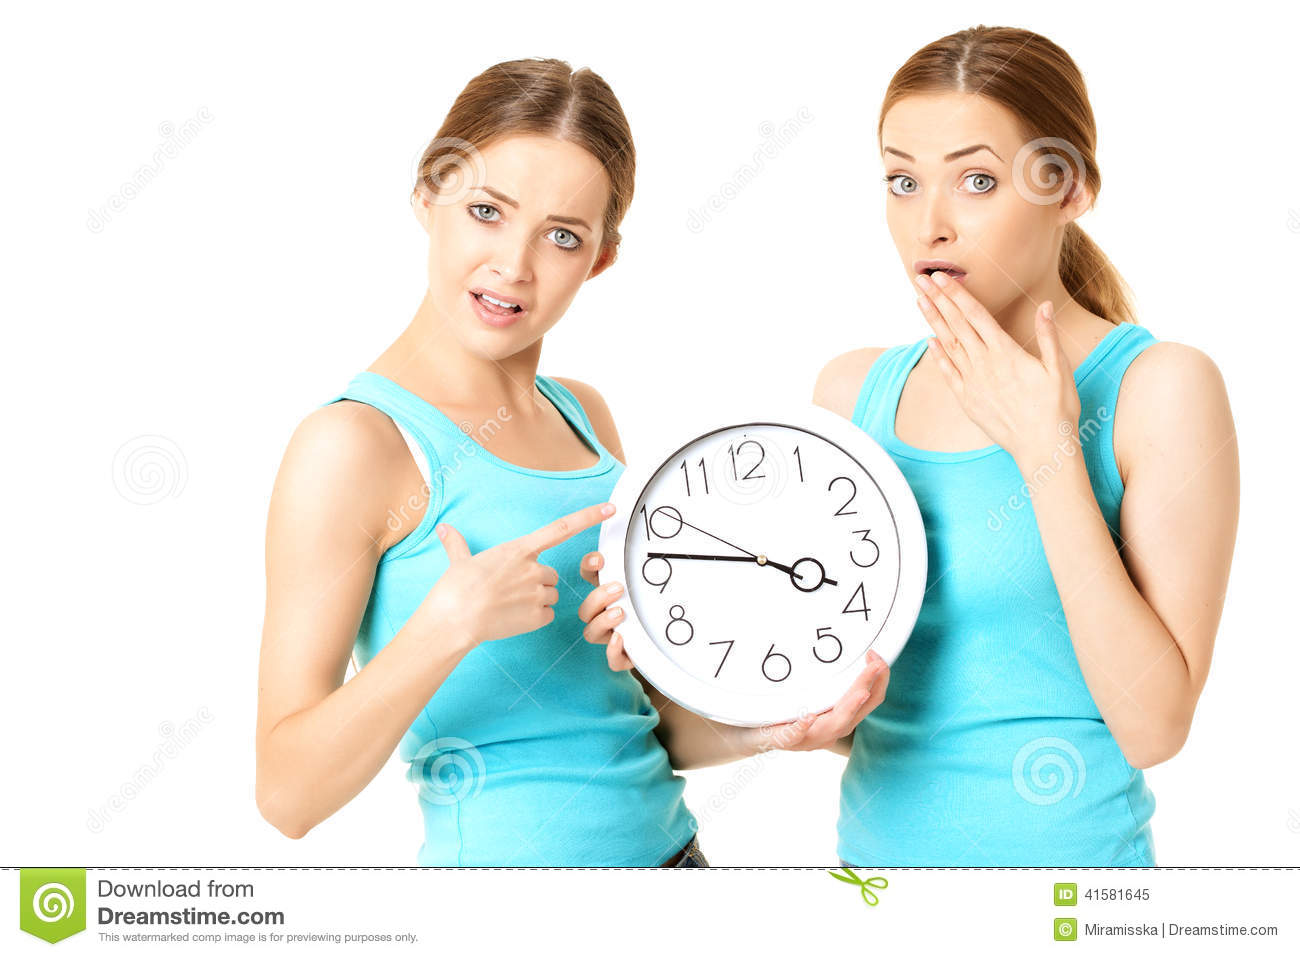 Two smiling women holding a clock